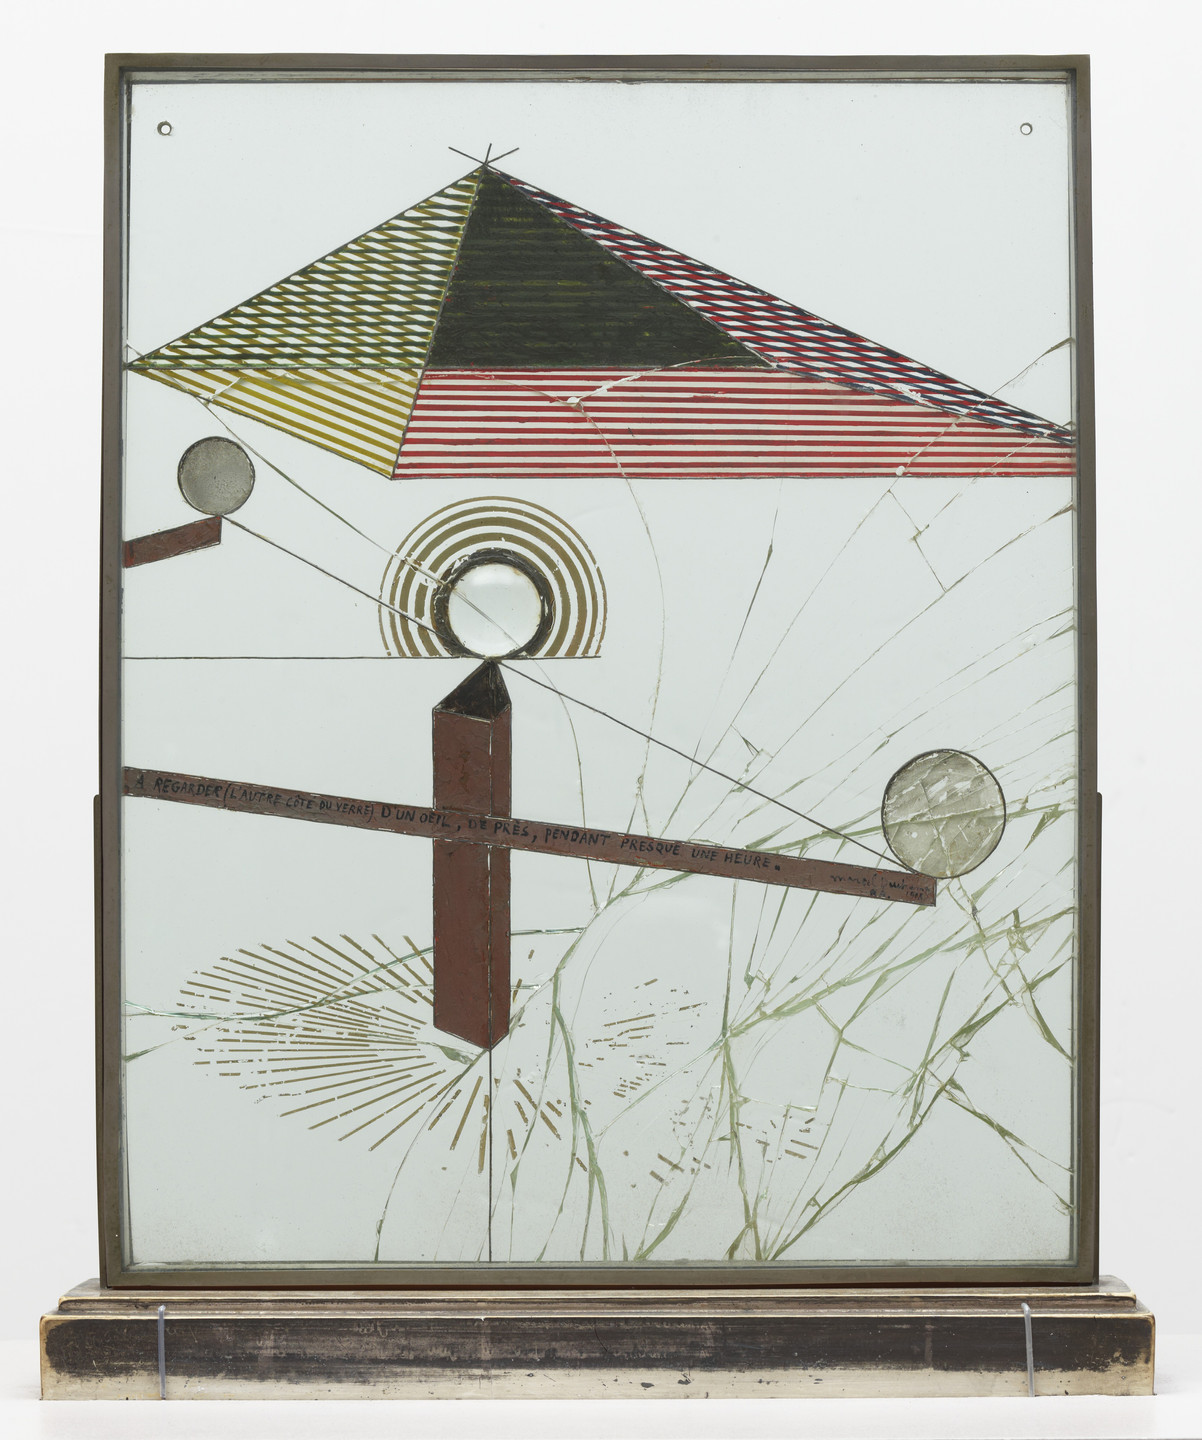 Marcel Duchamp. To Be Looked at (from the Other Side of the Glass) with One Eye, Close to, for Almost an Hour. Buenos Aires 1918